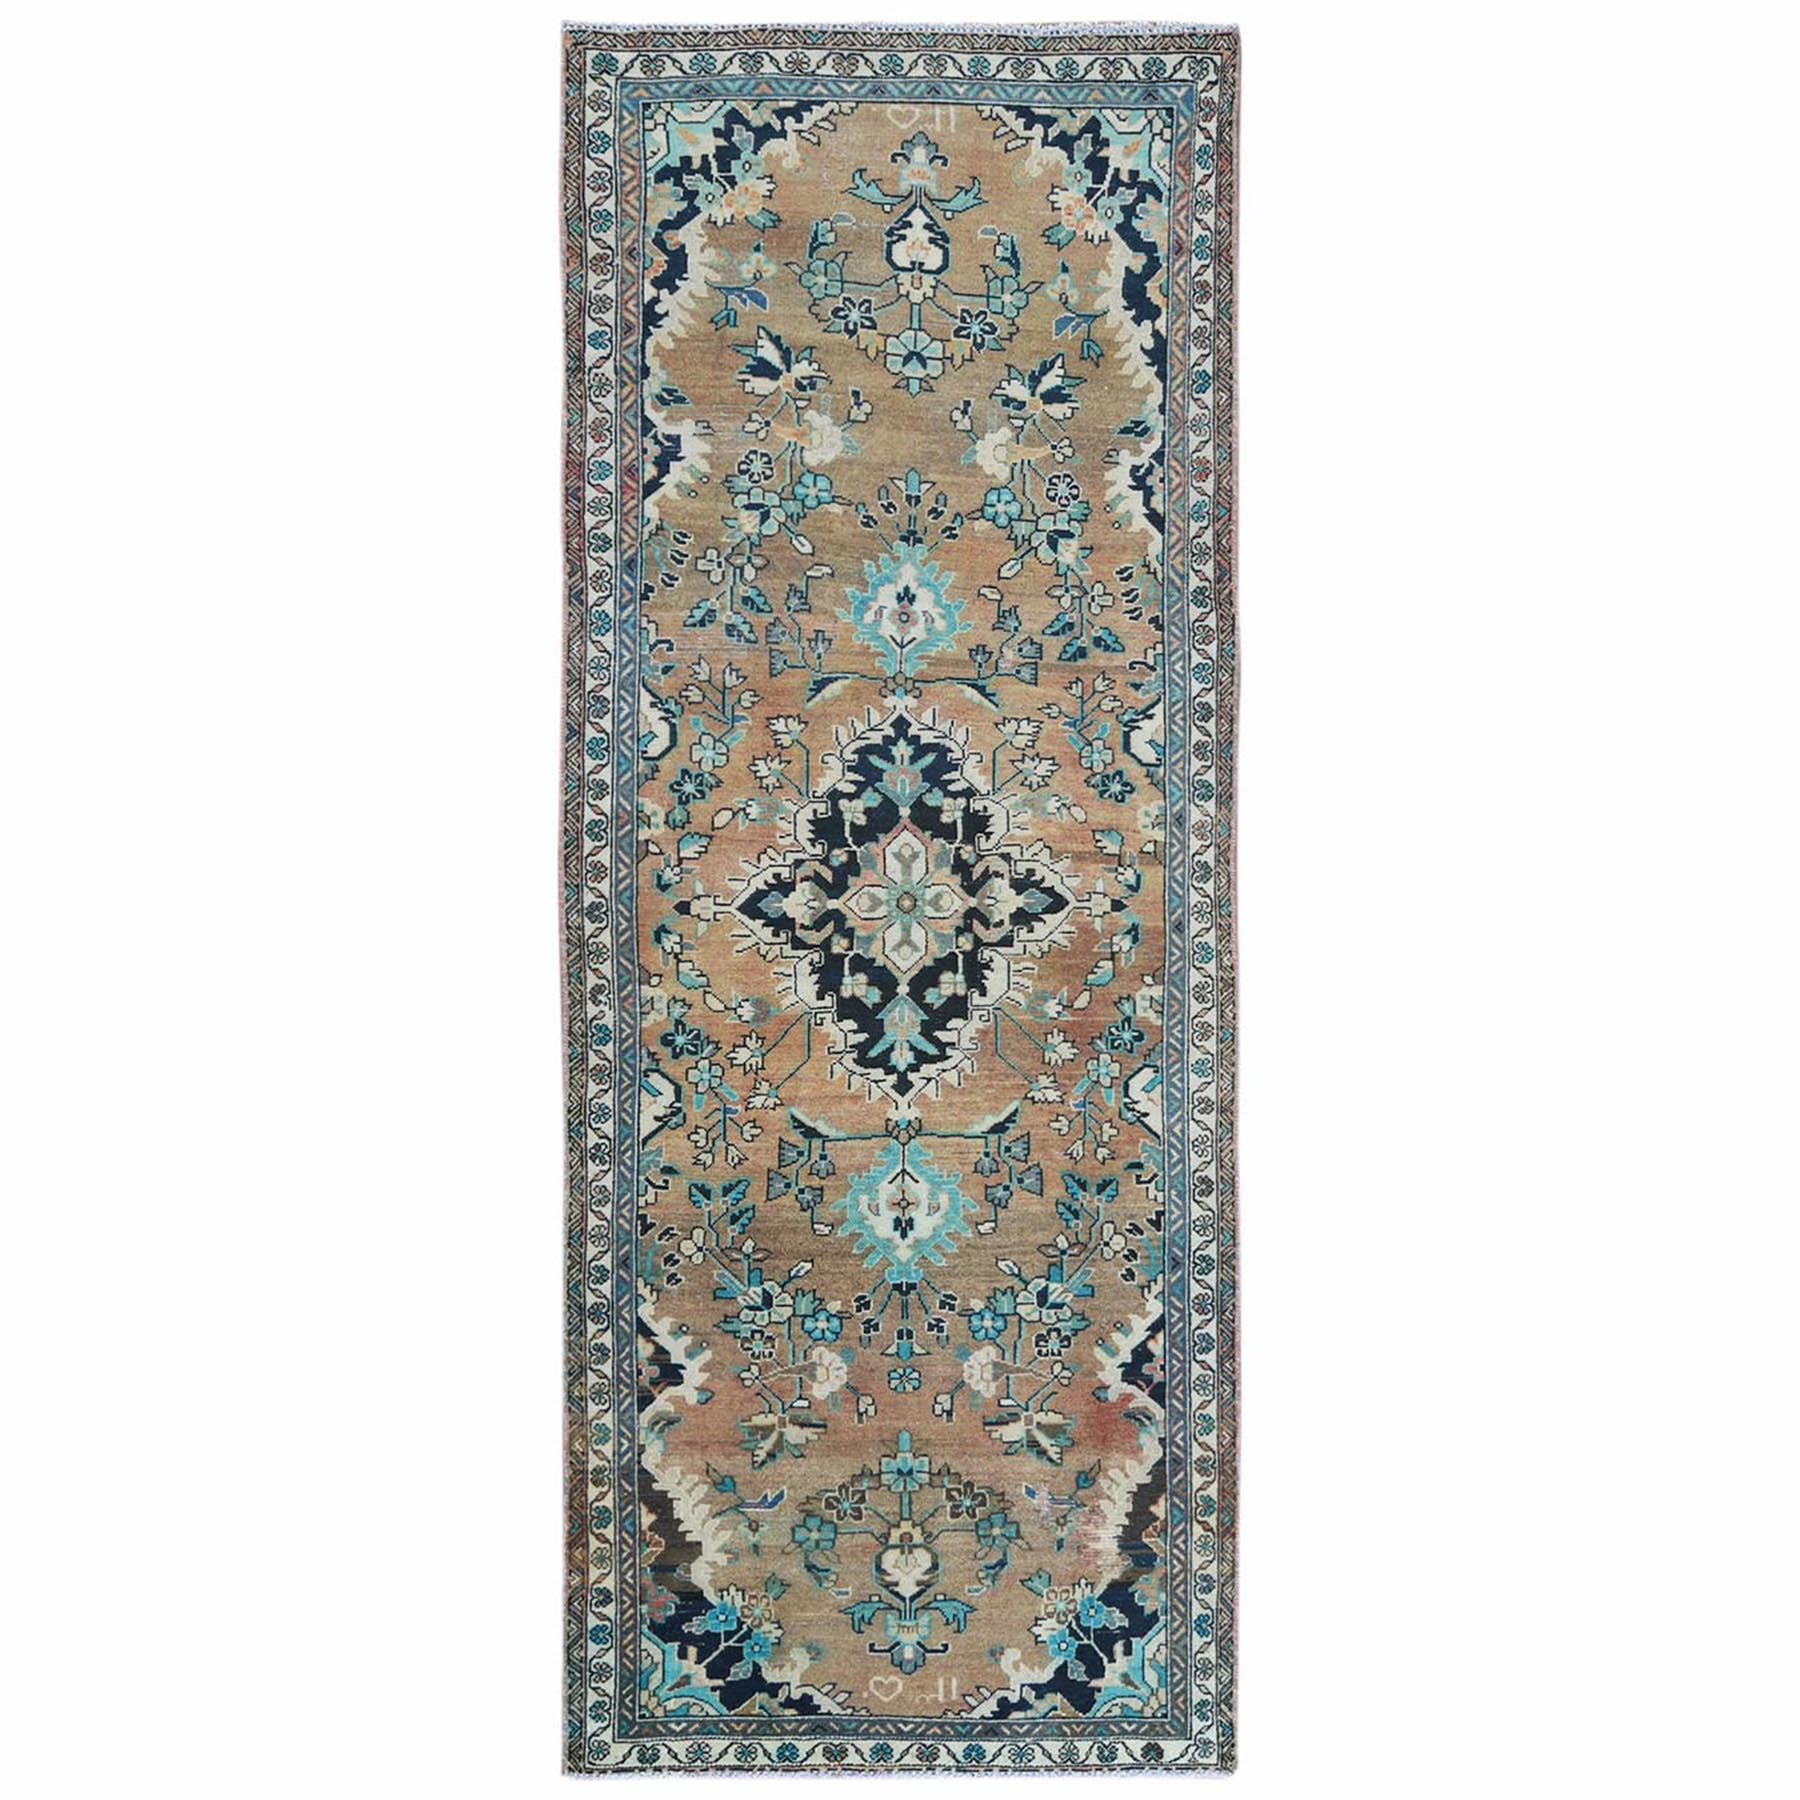 Fetneh Collection And Vintage Overdyed Collection Hand Knotted Orange Rug No: 1122006